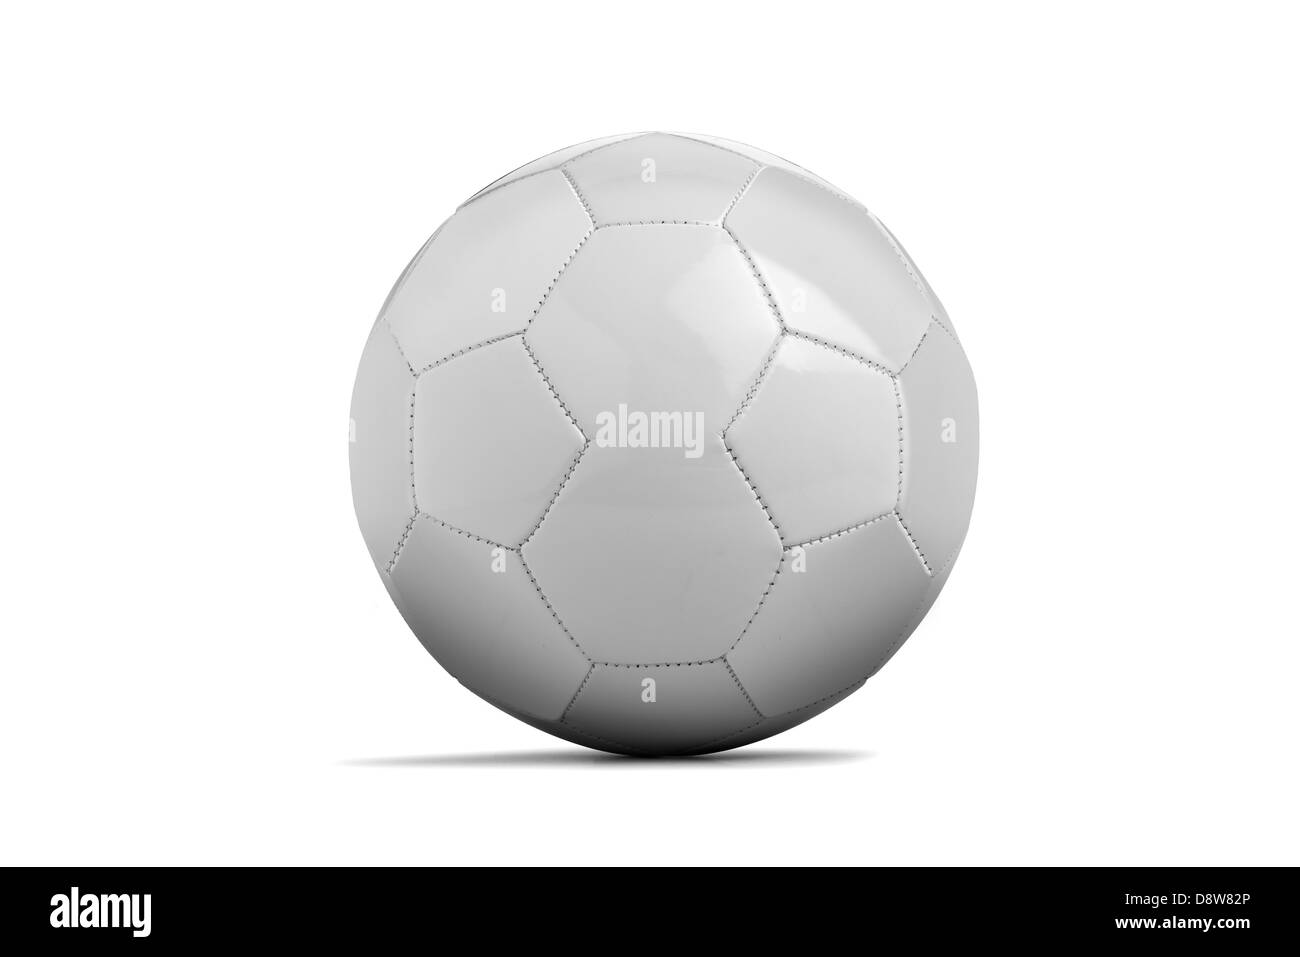 soccer ball isolated on white - Stock Image